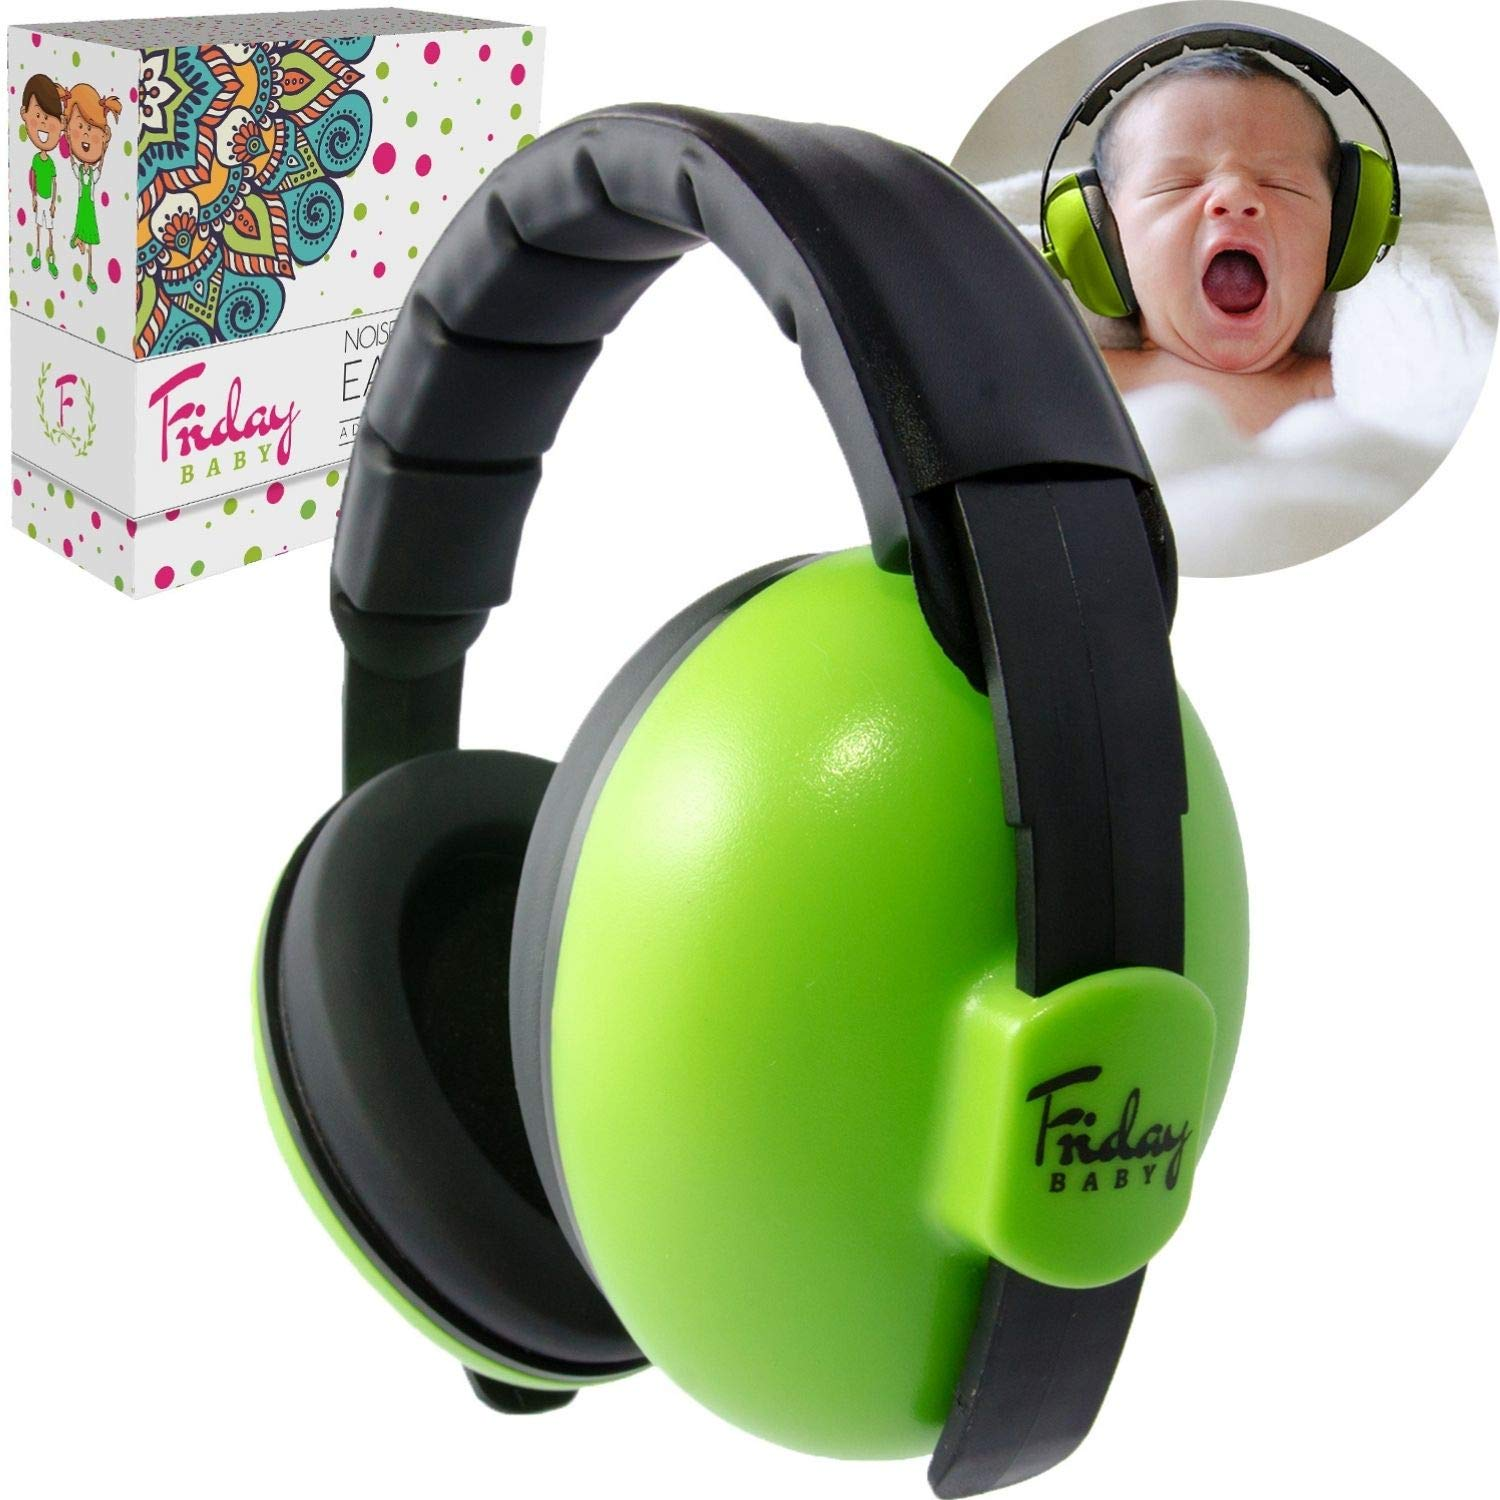 Fridaybaby Baby Ear Protection (0-2+ Years) - Comfortable and Adjustable Noise Cancelling Baby Ear Muffs for Infants & Newborns   Baby Headphones Noise Reduction for Airplanes Fireworks Concert